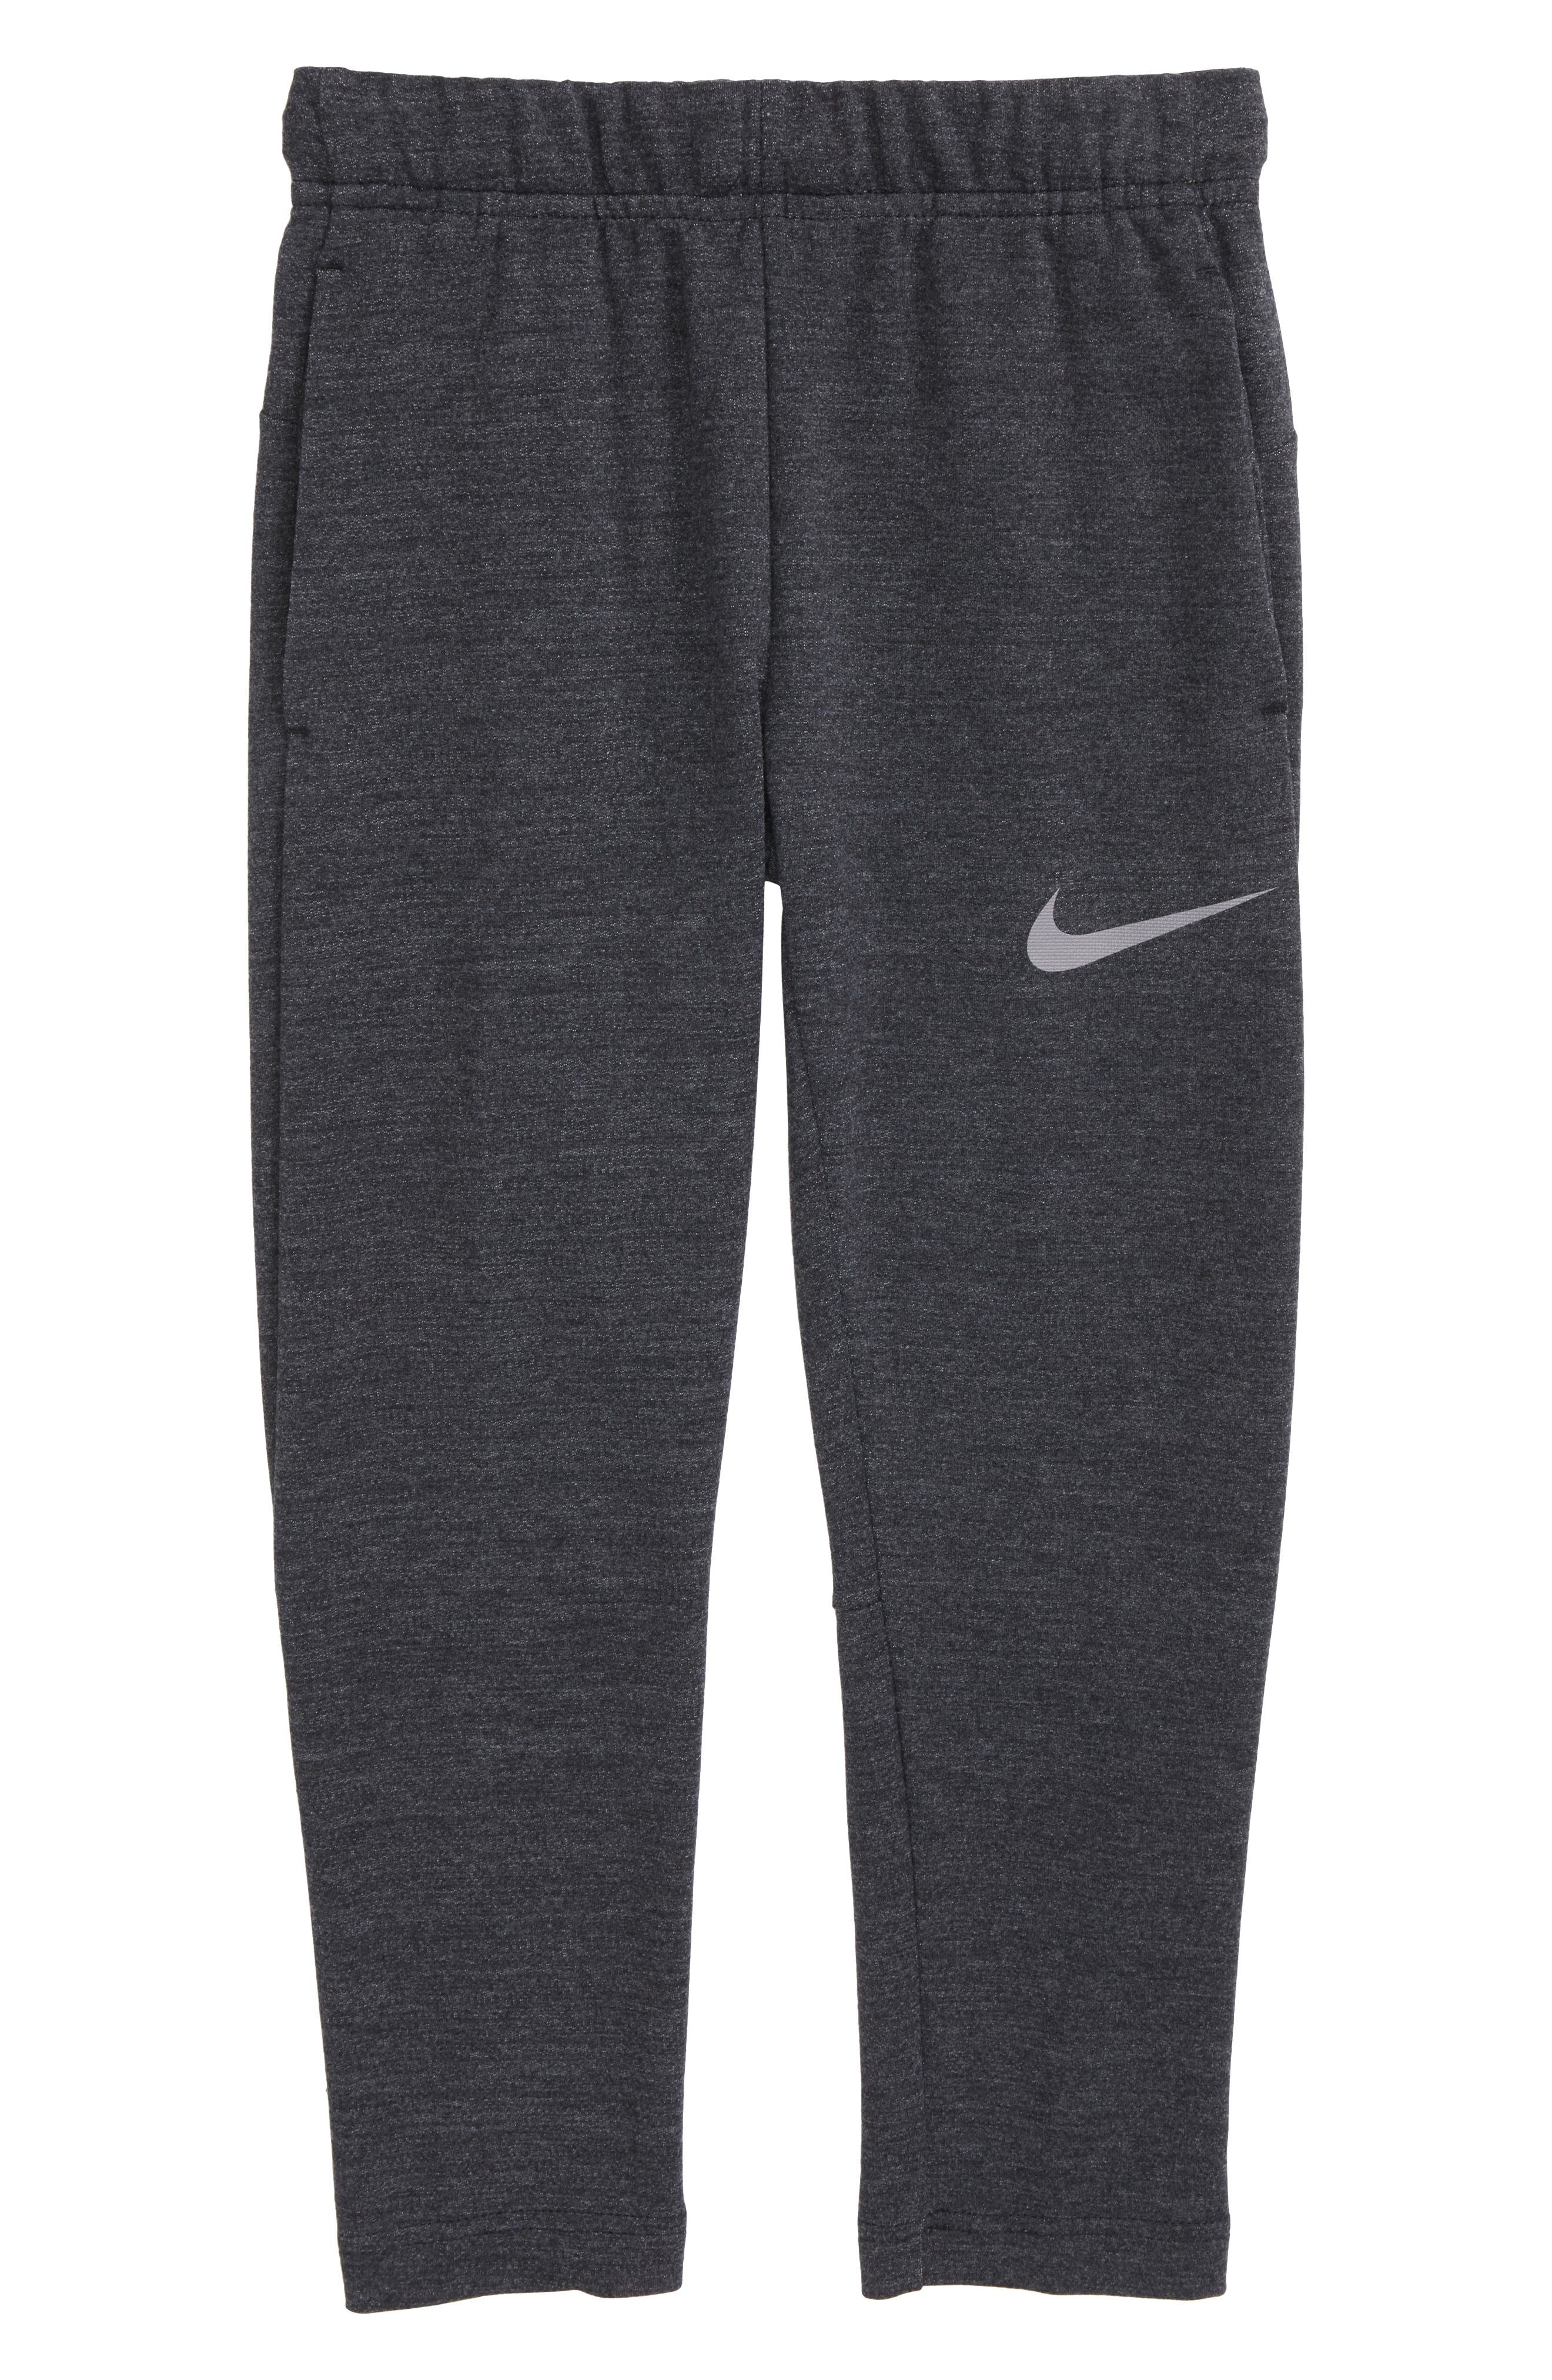 Dry Training Sweatpants,                             Main thumbnail 1, color,                             025